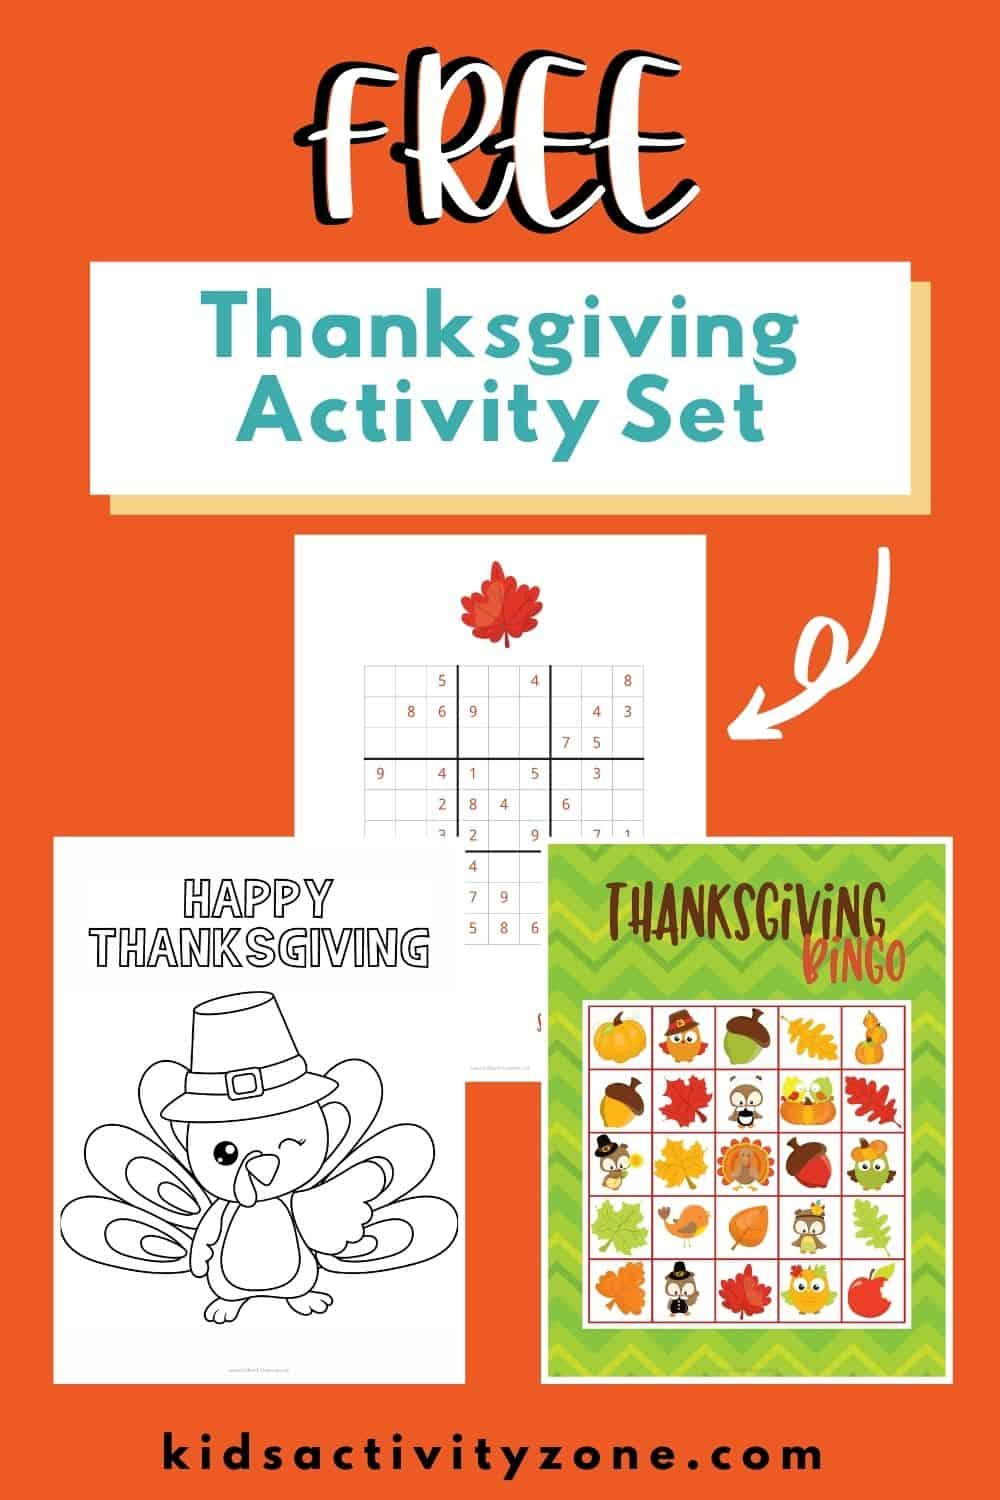 Free Thanksgiving Activities Printable set is the perfect entertainment for holiday parties. It included Bingo, Coloring Pages, Sudoku puzzles, Word Searches and more!